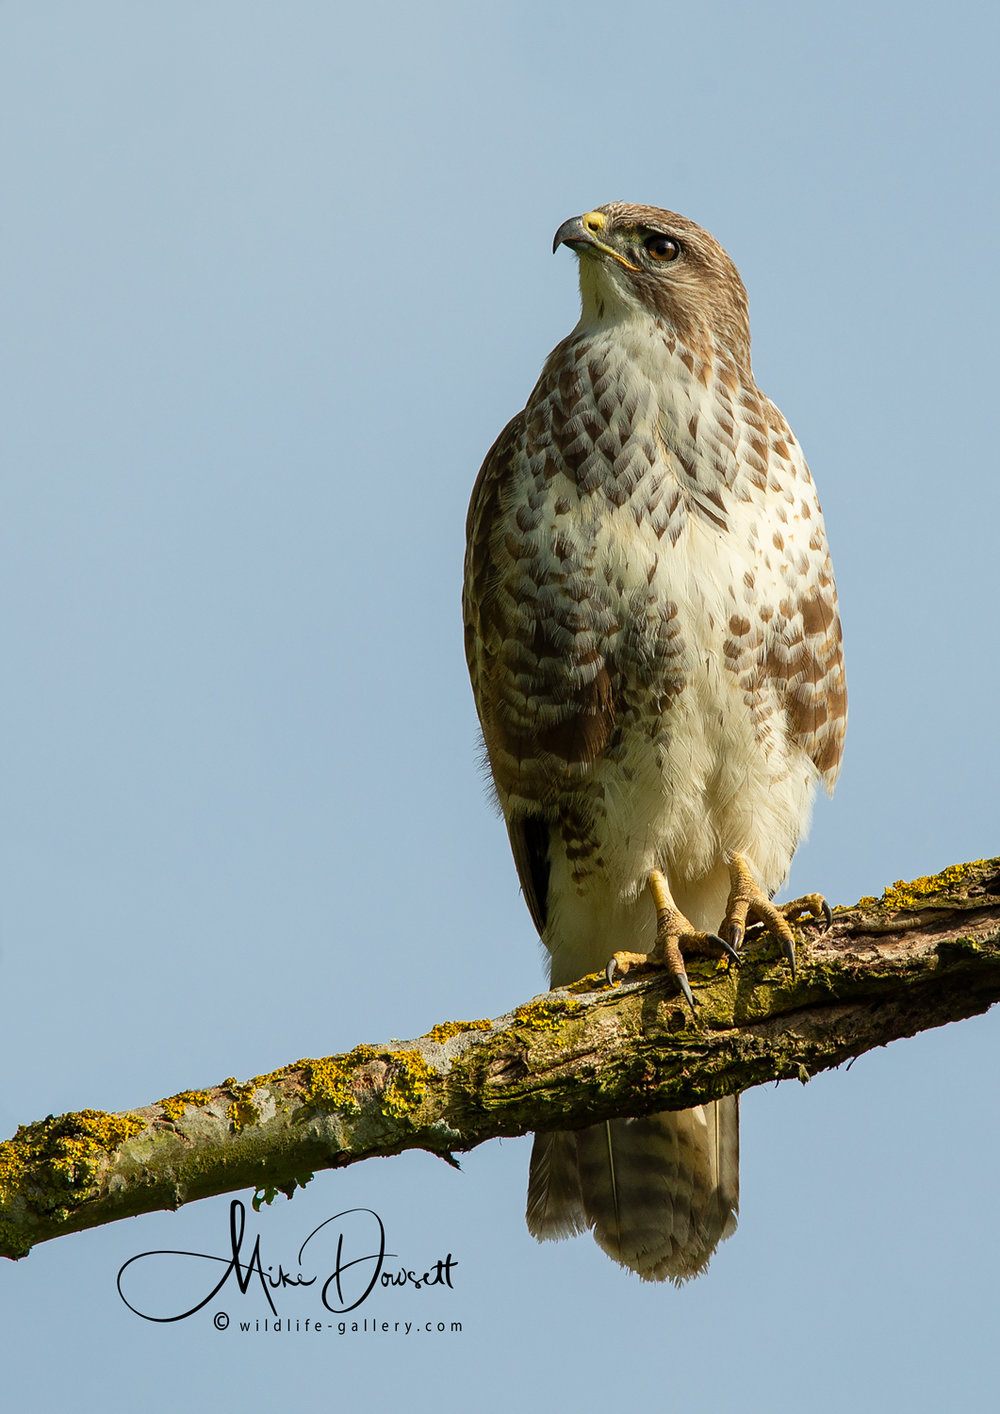 This beautiful Common Buzzard is King of the meadow and the surrounding areas.  No other bird or animal comes close to the strength and aggression of this raptor.